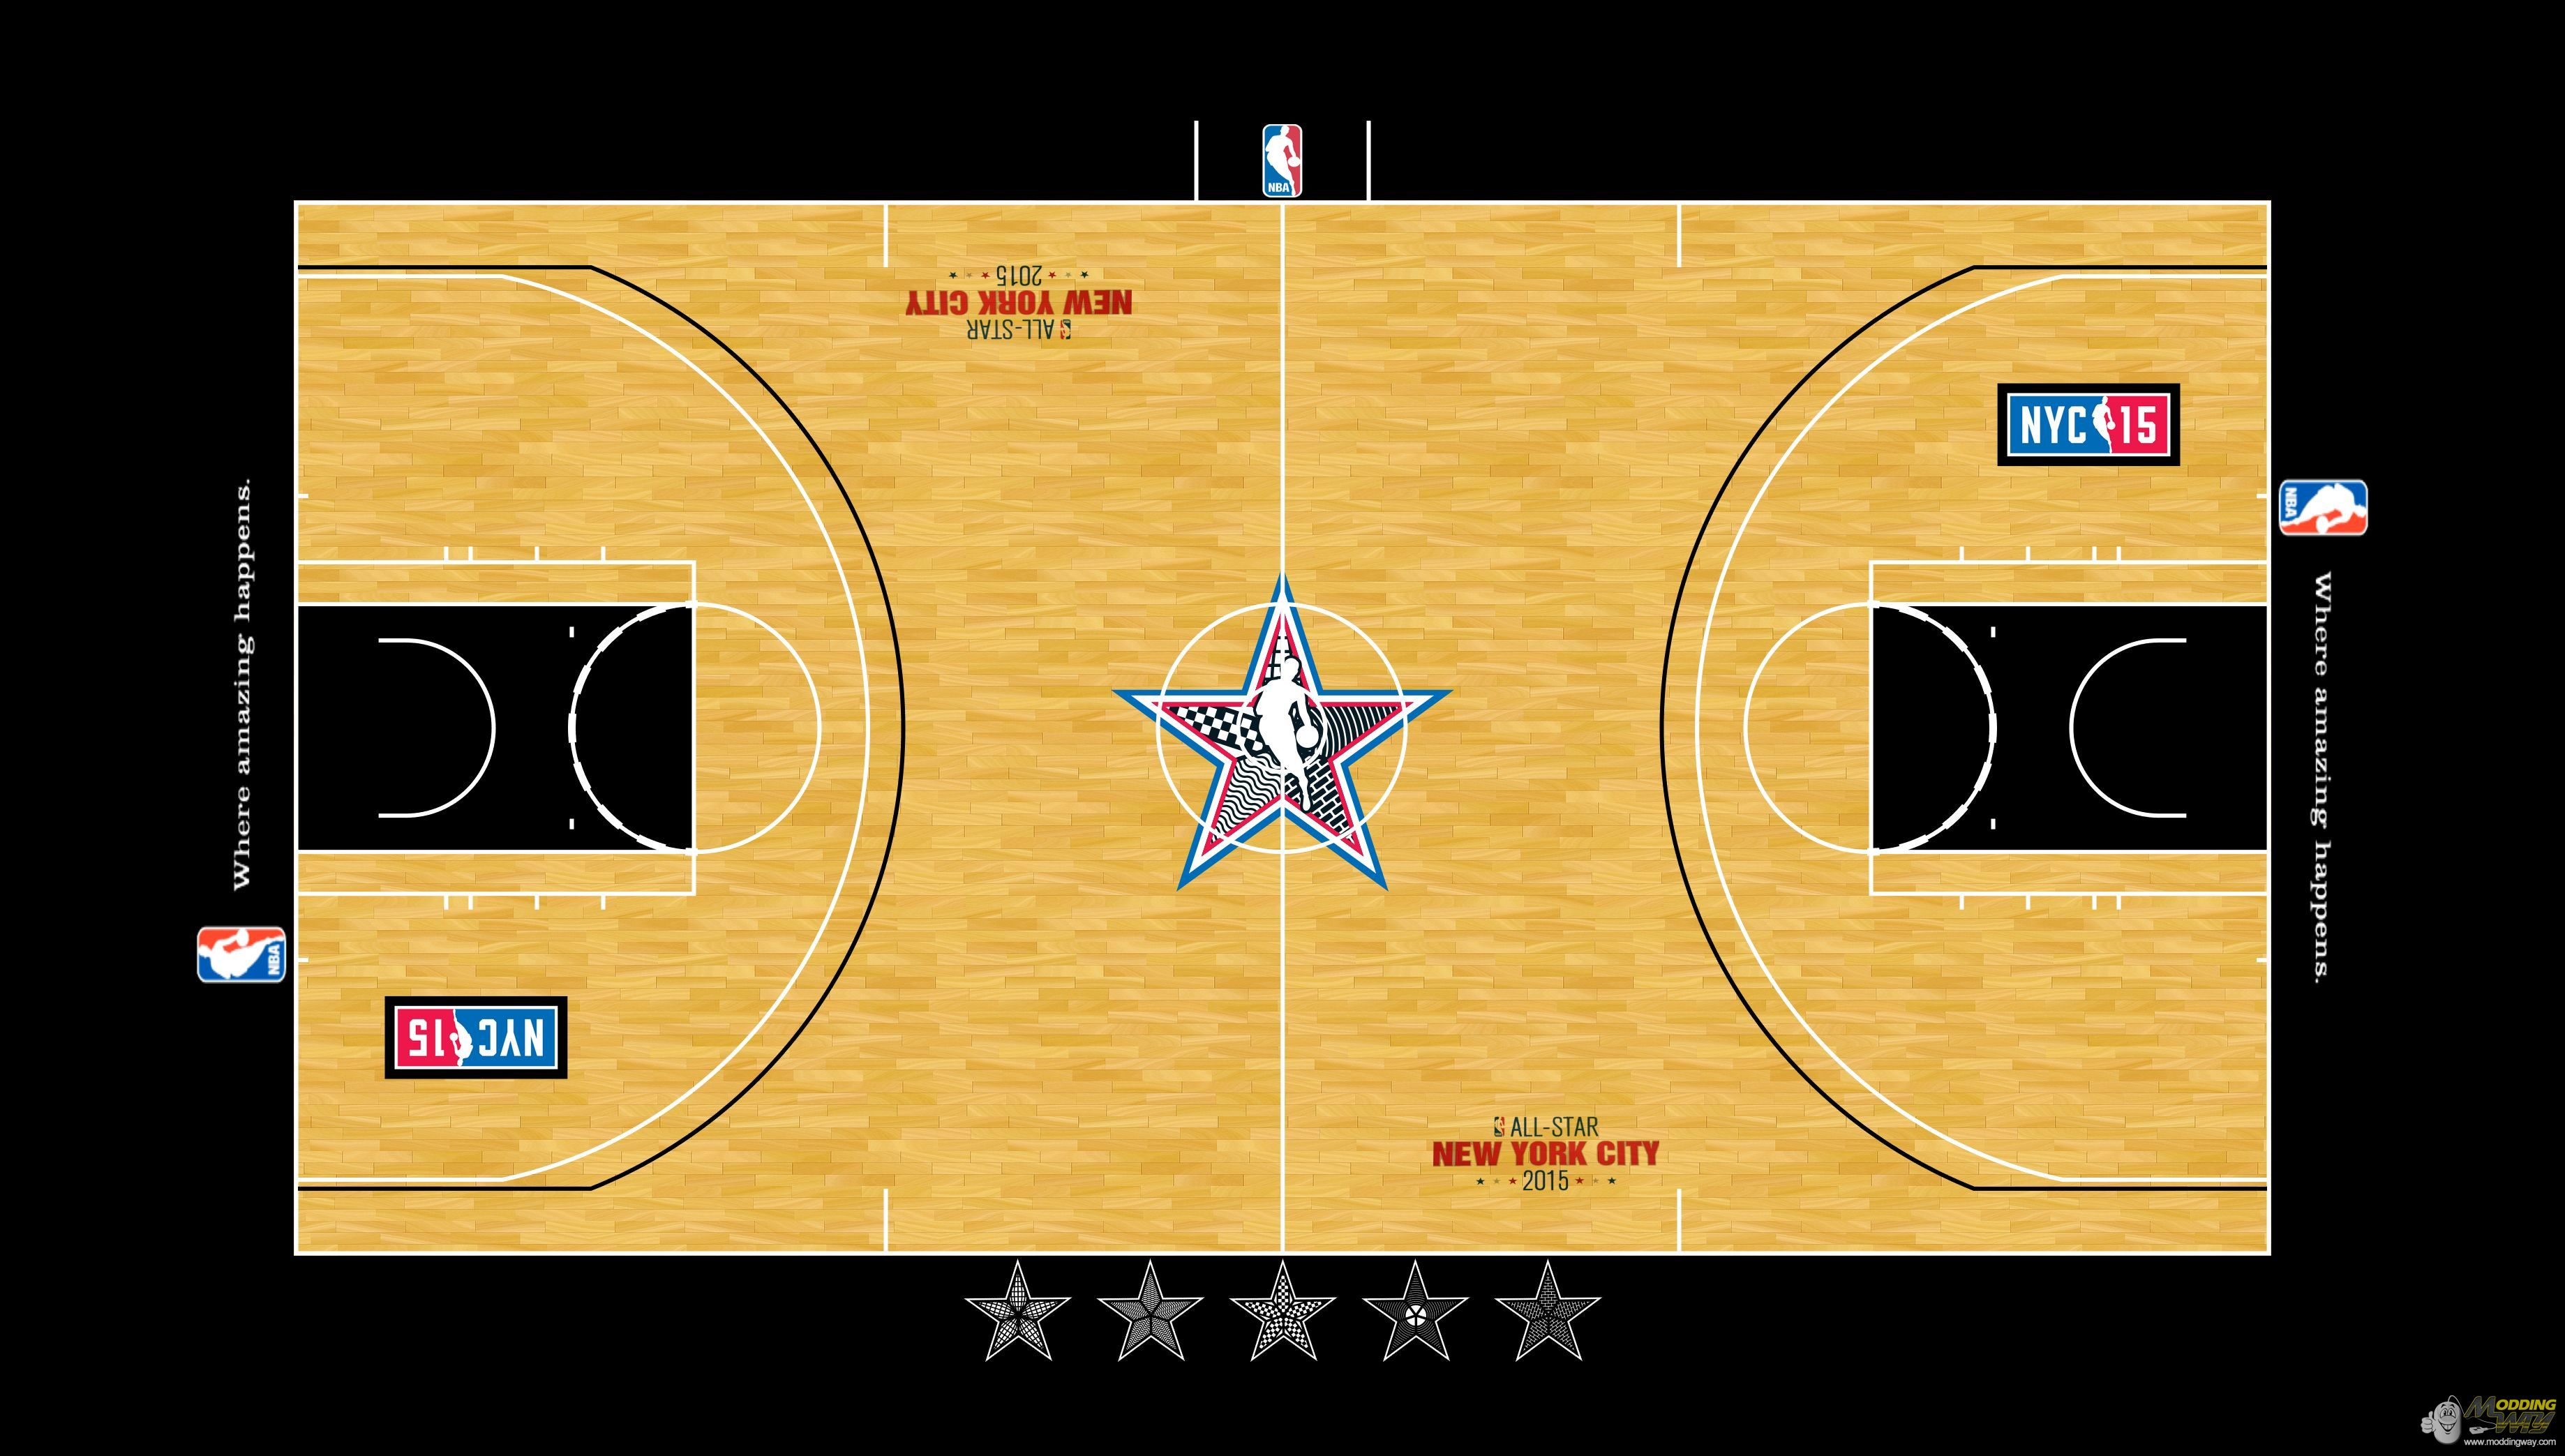 Nba basketball basketball scores for How big is a basketball court